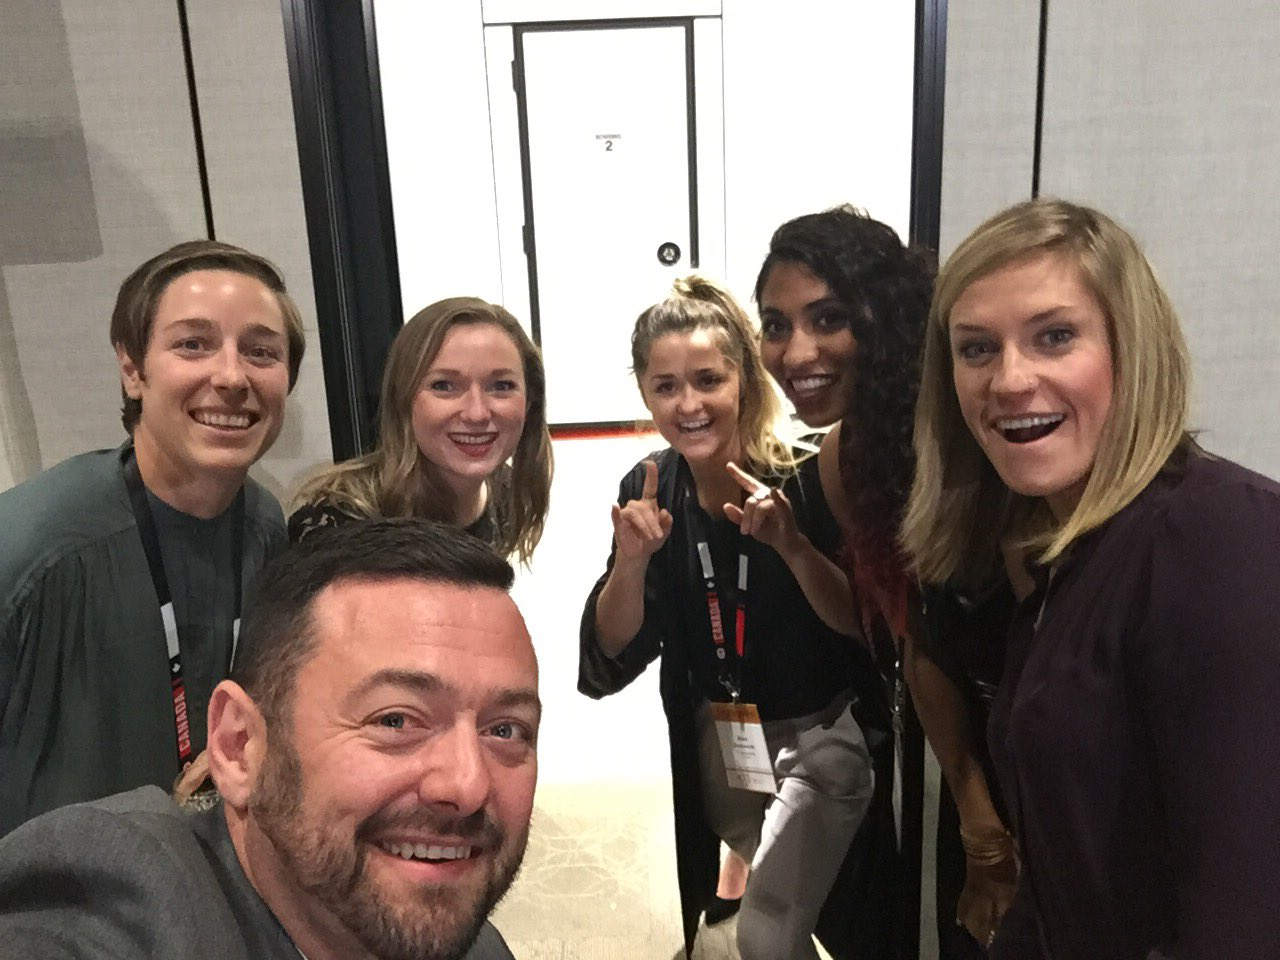 Waiting to take the stage at @GoldMedalPlates  Was great meeting all these amazing athletes! #GMPStJohns    @gsimmerling https://t.co/VJlcMxhON6